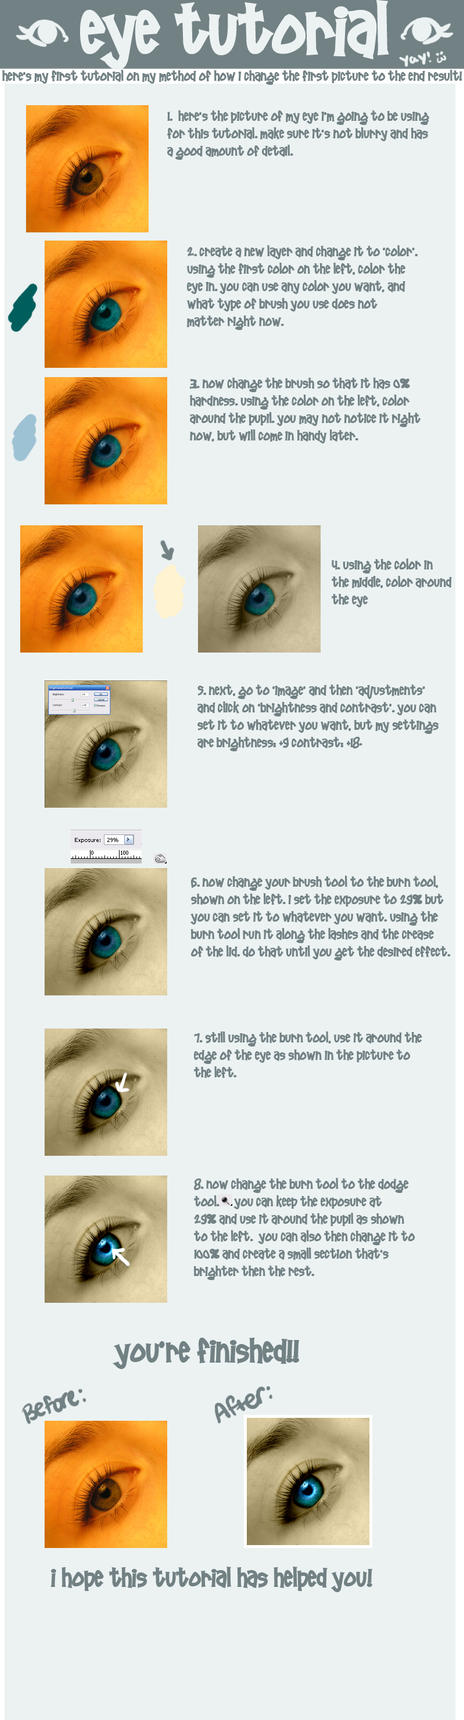 Eye Tutorial by Sugargrl14